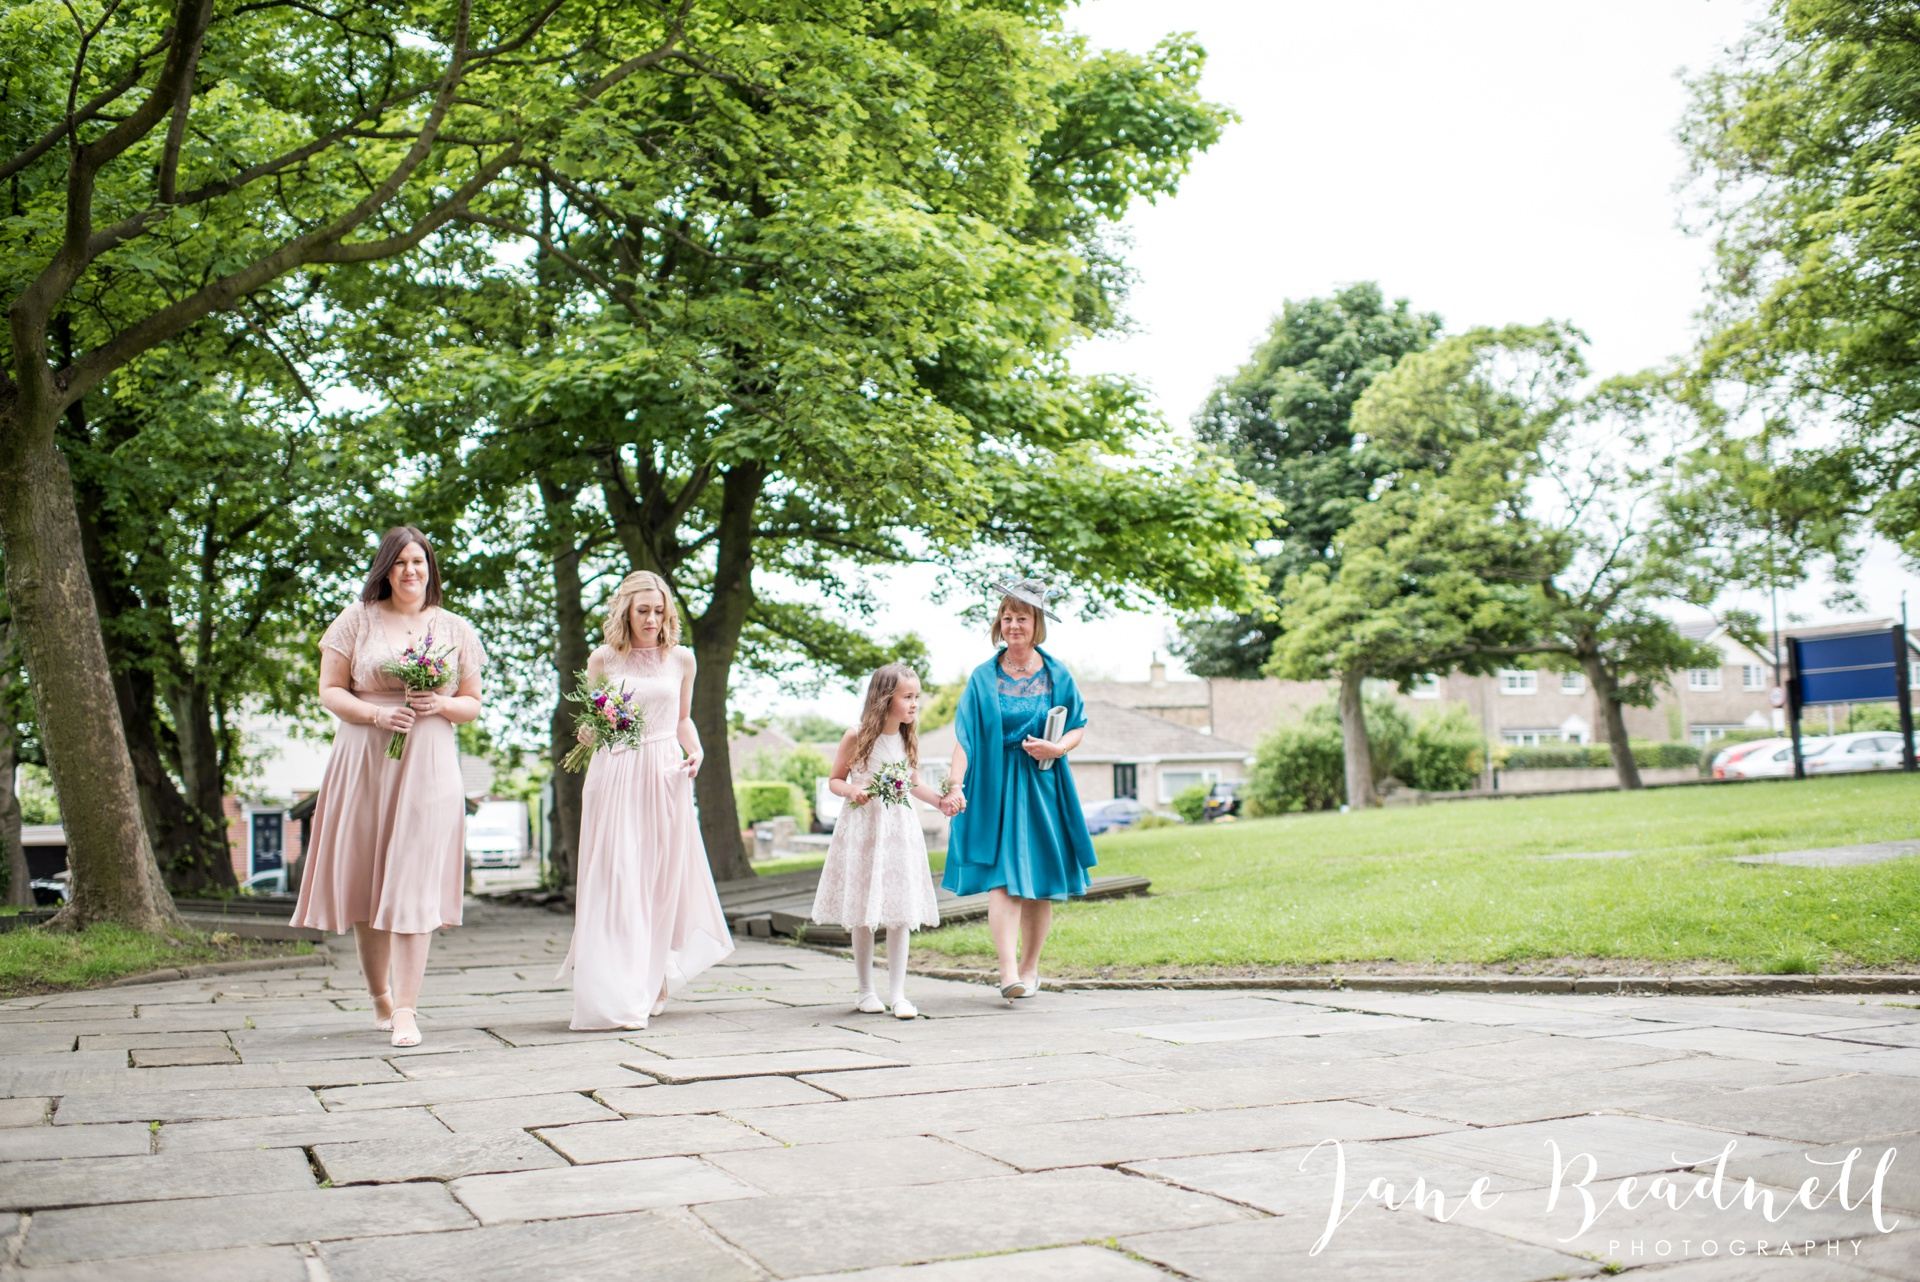 Yorkshire Wedding Photography the cheerful Chilli Barn Wedding by Jane Beadnell Photography_0049